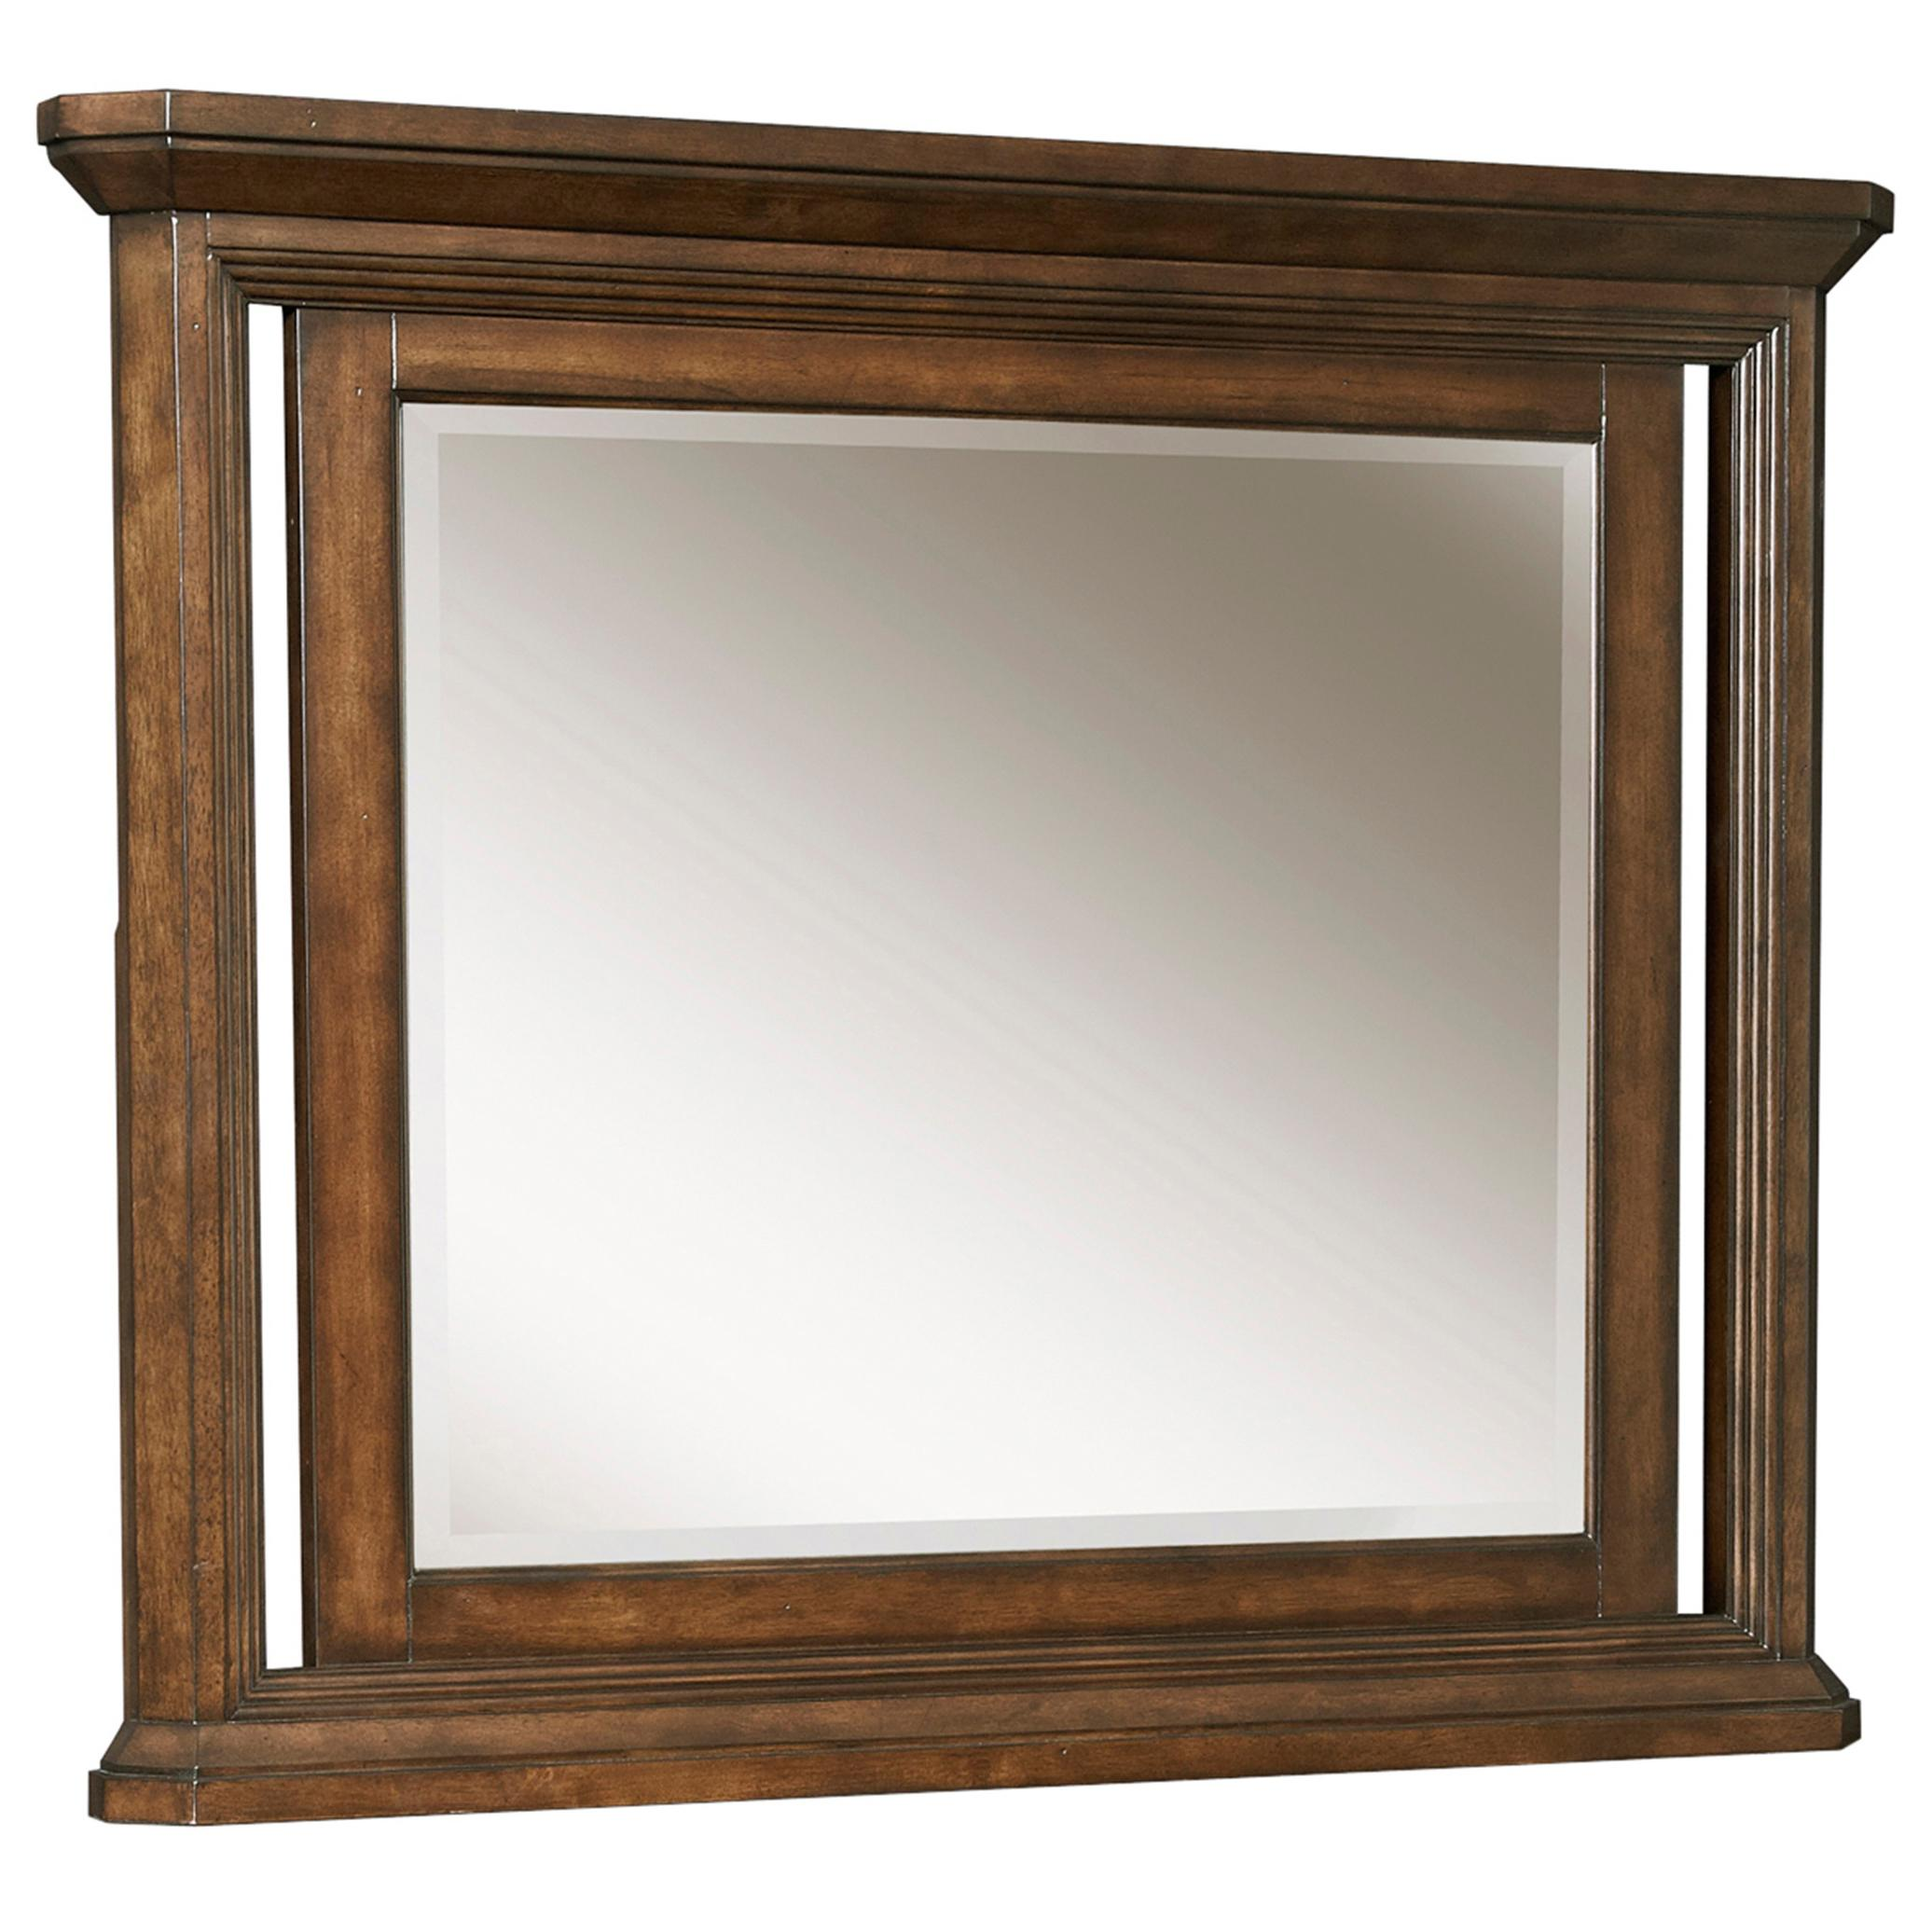 Broyhill Furniture Estes Park Dresser Mirror - Item Number: 4364-236